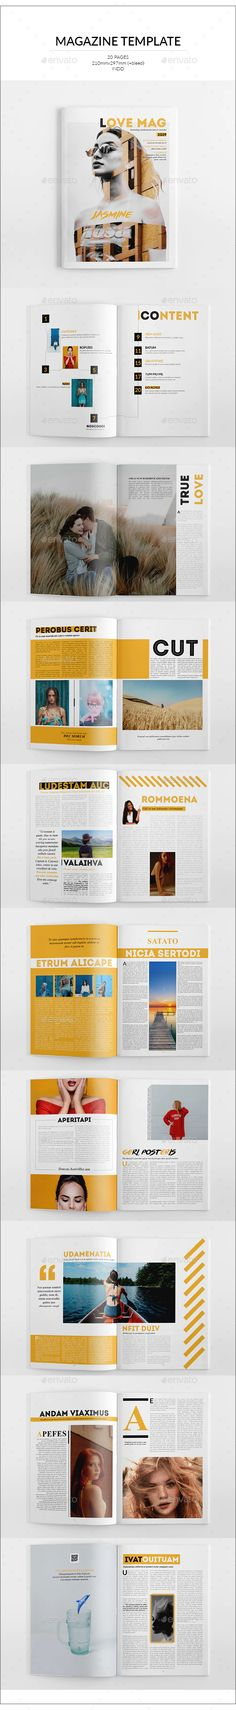 Buy Love Magazine Template by on GraphicRiver. The Magazine The Magazine. This layout is suitable for any project purpose. Resume Templates, Brochure Template, Flyer Template, Love Magazine, Social Media Template, Magazine Template, Photo Displays, Layout, Illustrations